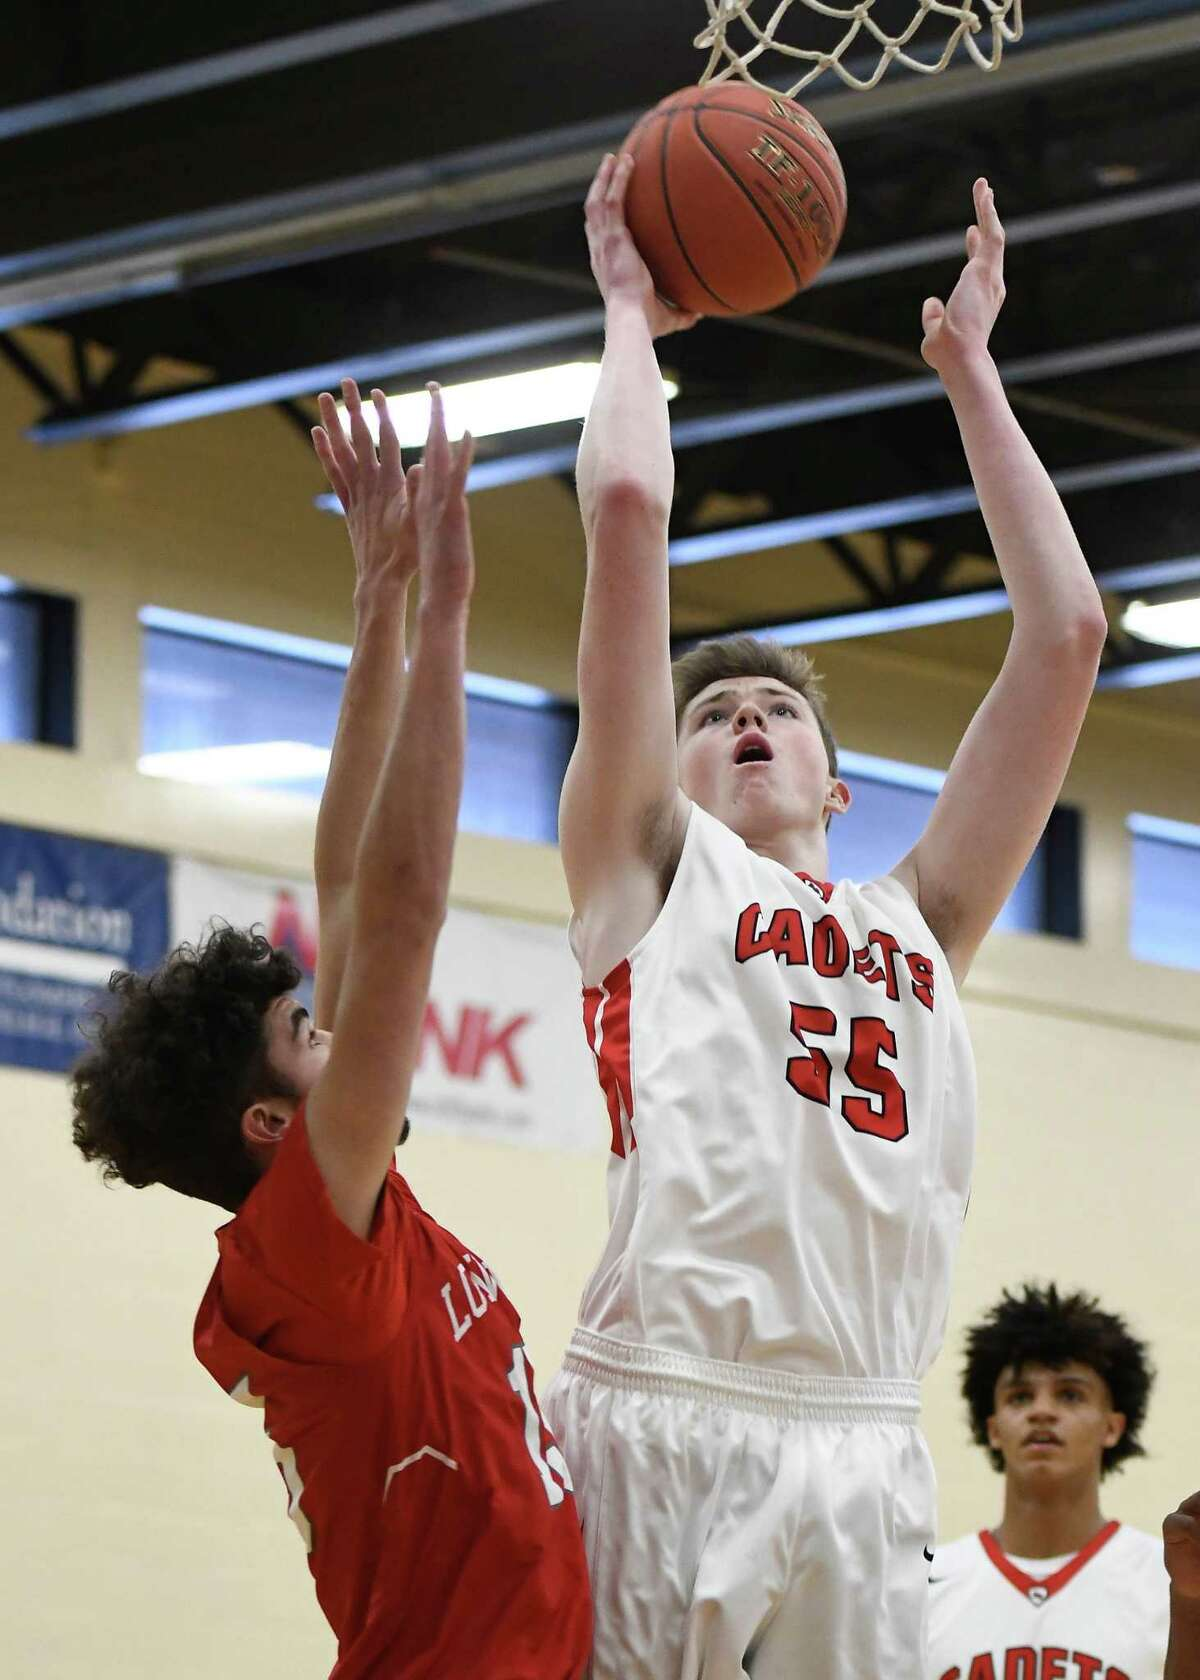 Riley Mulvey played at Albany Academy last season, but switched to St. Thomas More Prep this season, and said that helped speed his development. (Jenn March, Special to the Times Union)